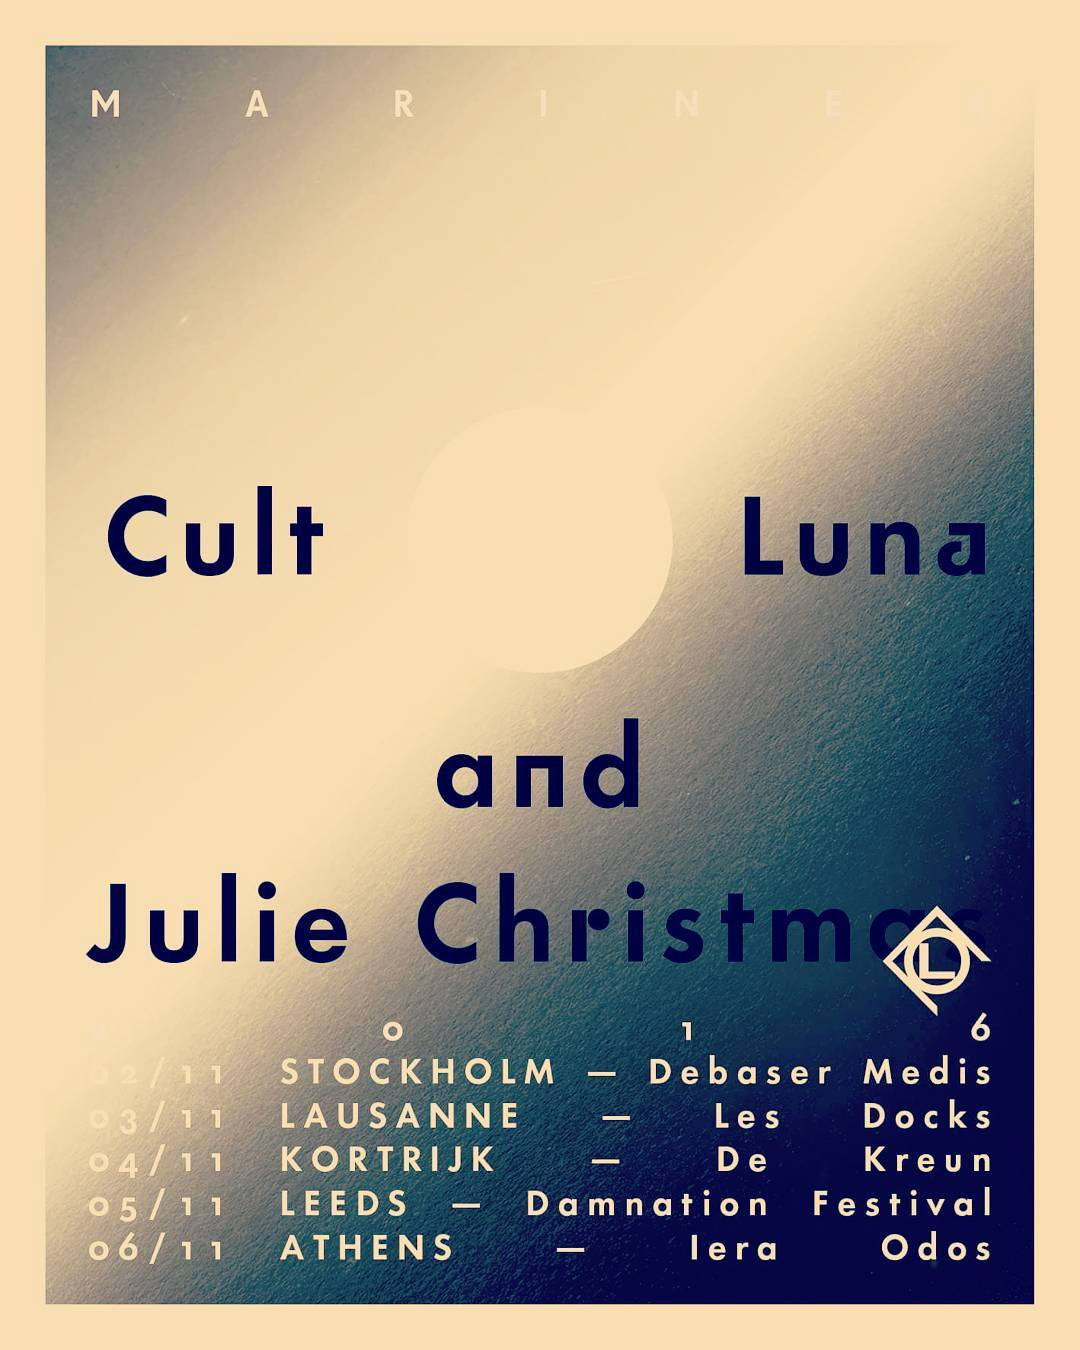 Touringram CultOfLuna amp JulieChristmas  Mariner Tour Europe 2016Read More